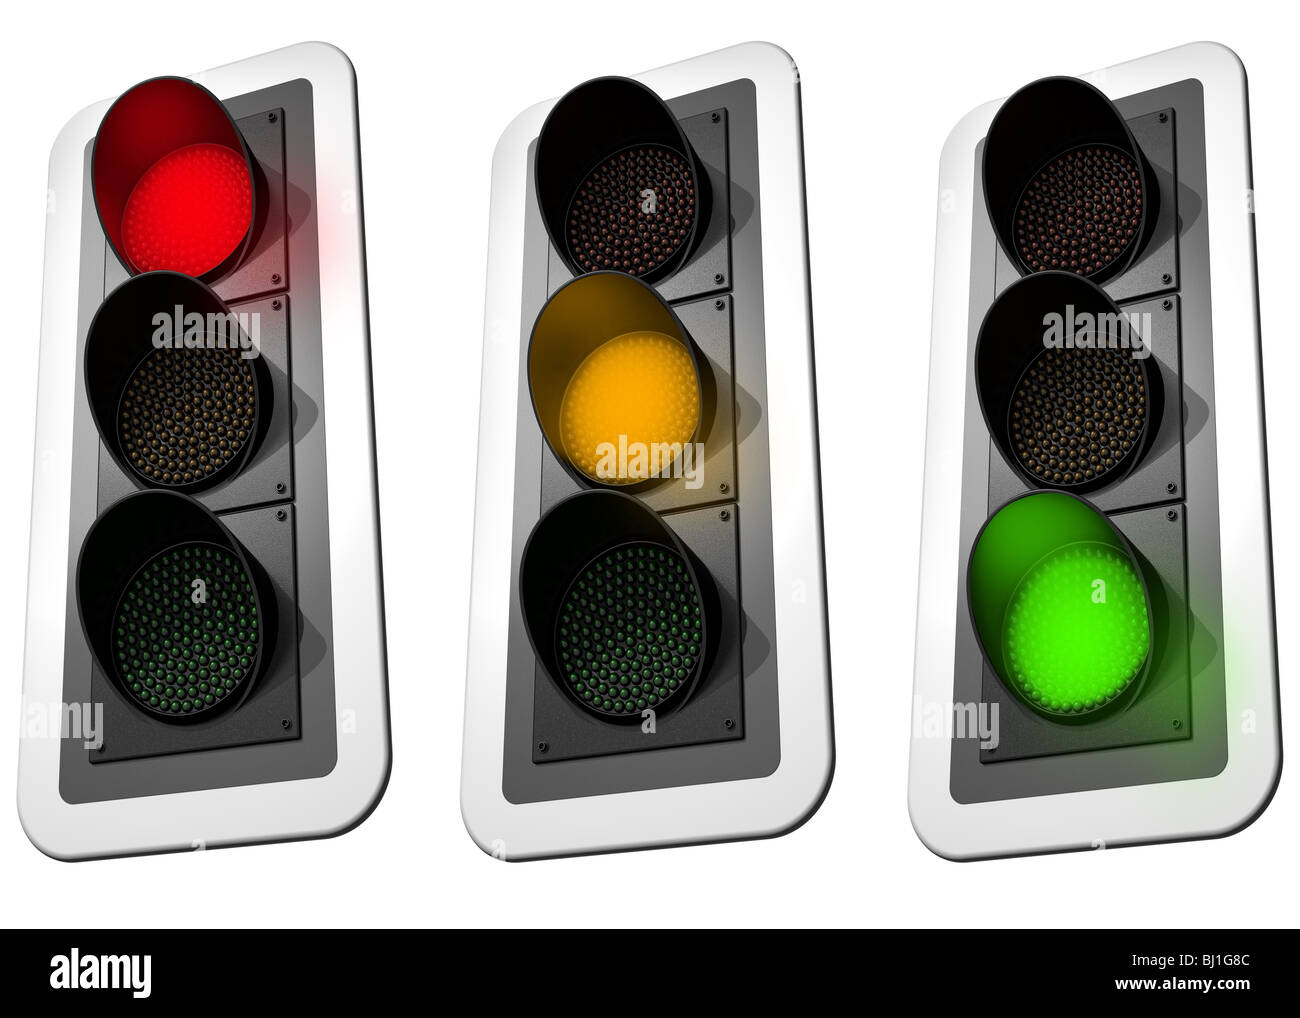 Isolated illustration of three signaling traffic lights - Stock Image